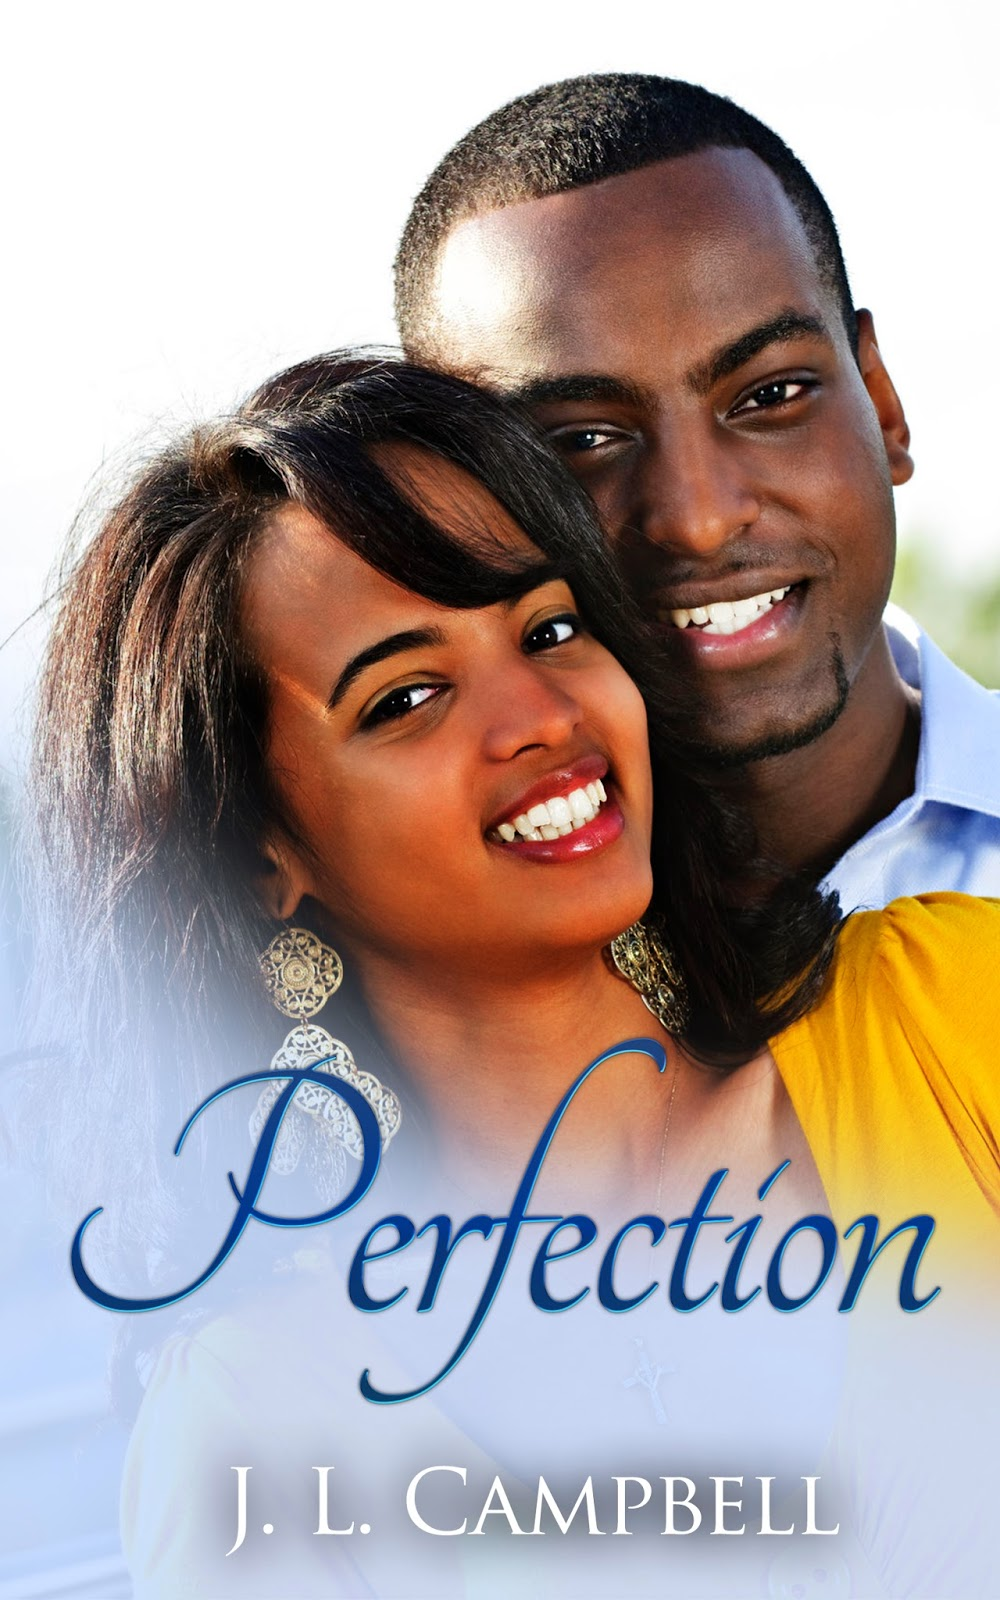 http://www.amazon.com/Perfection-Sisters---Law-Book-1-ebook/dp/B00RPTNOHA/ref=sr_1_1?s=books&ie=UTF8&qid=1420296469&sr=1-1&keywords=Perfection+by+J.L.+Campbell